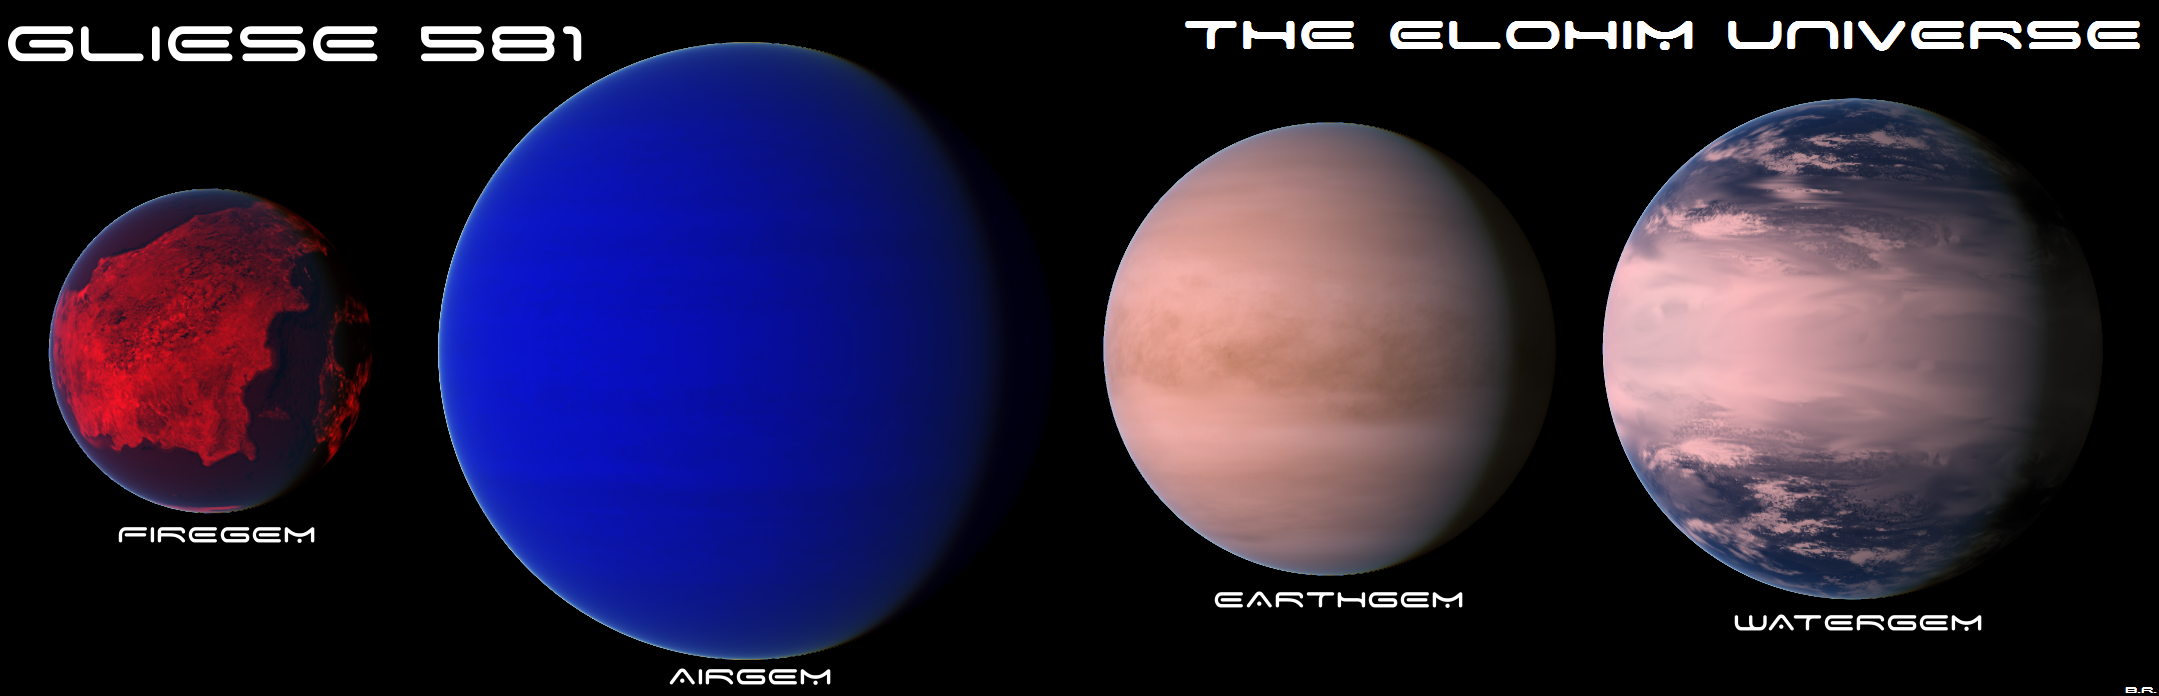 gliese 876 system - photo #40